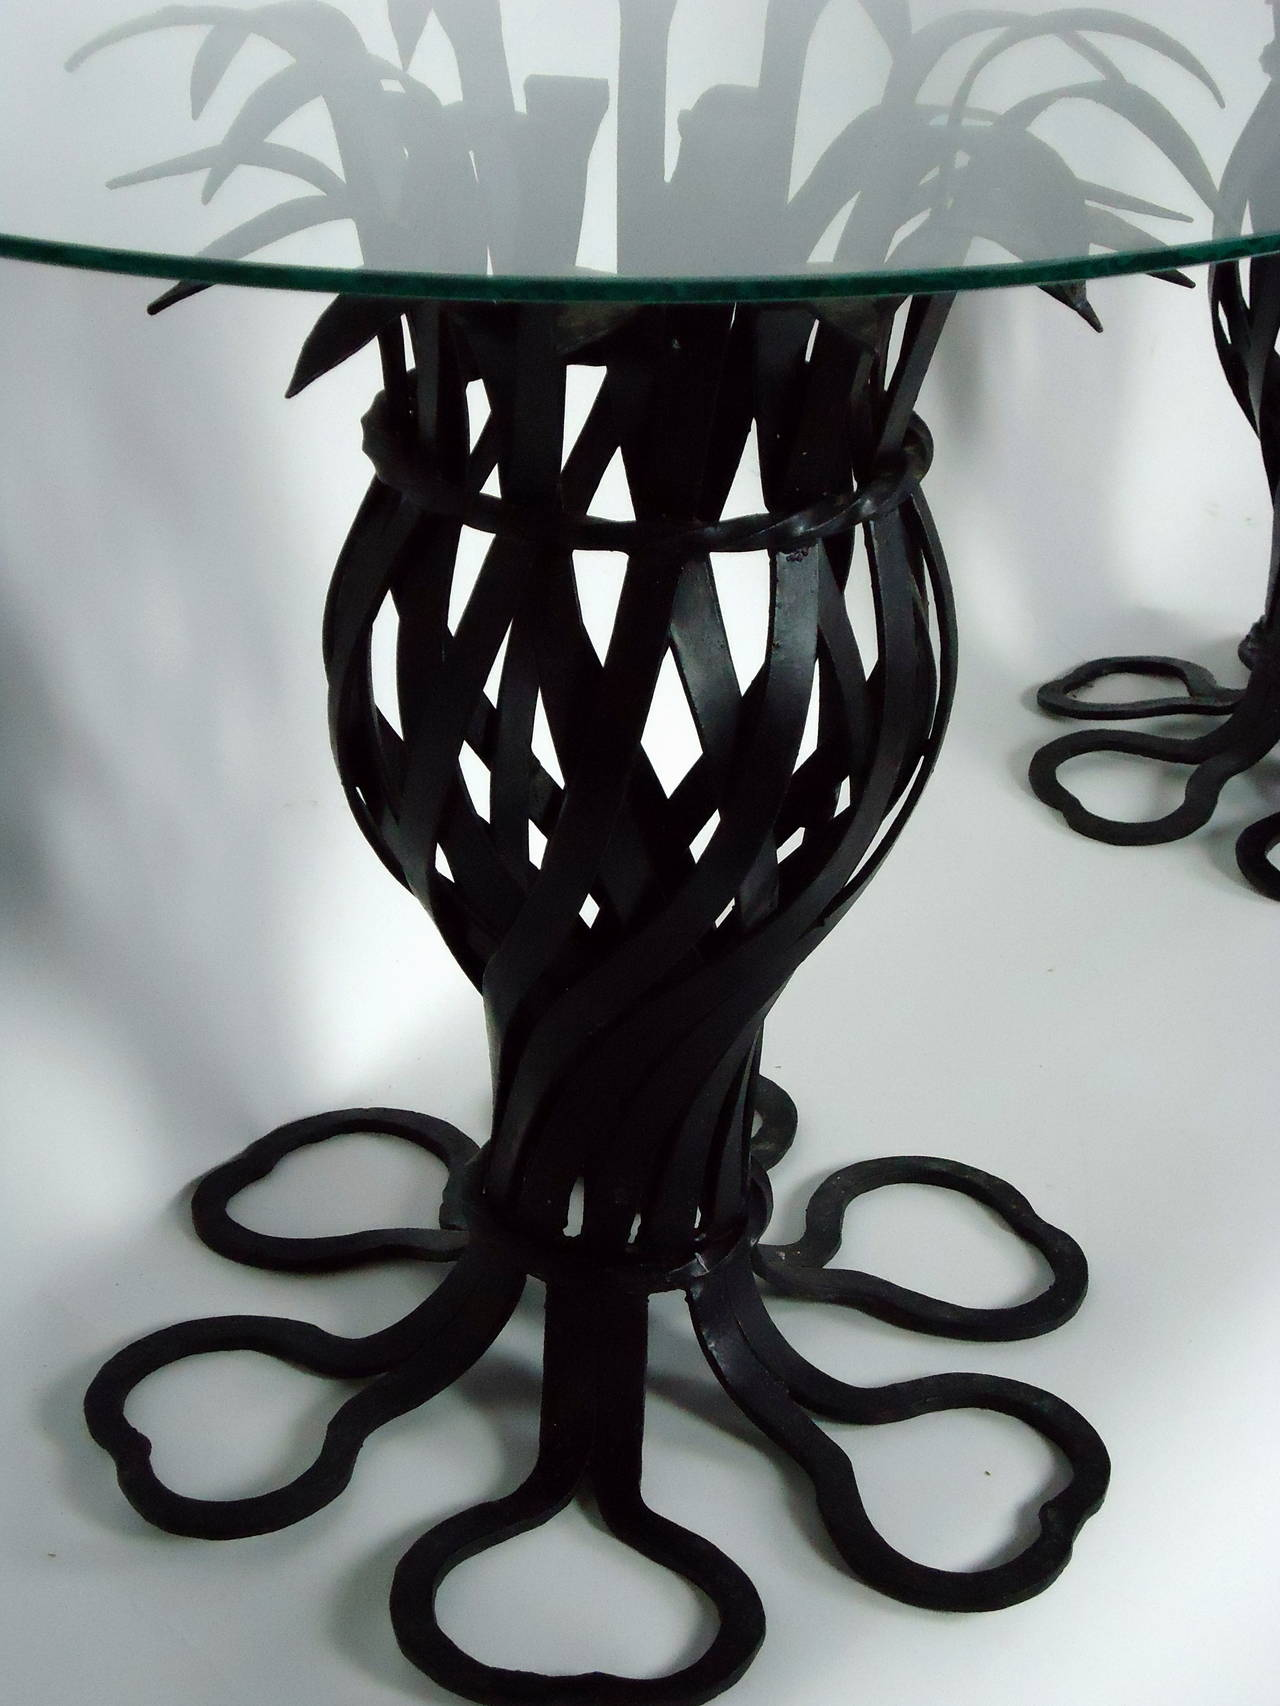 Salterini Style Pair of Woven Wrought Iron Pineapple End Tables, circa 1970 For Sale 1